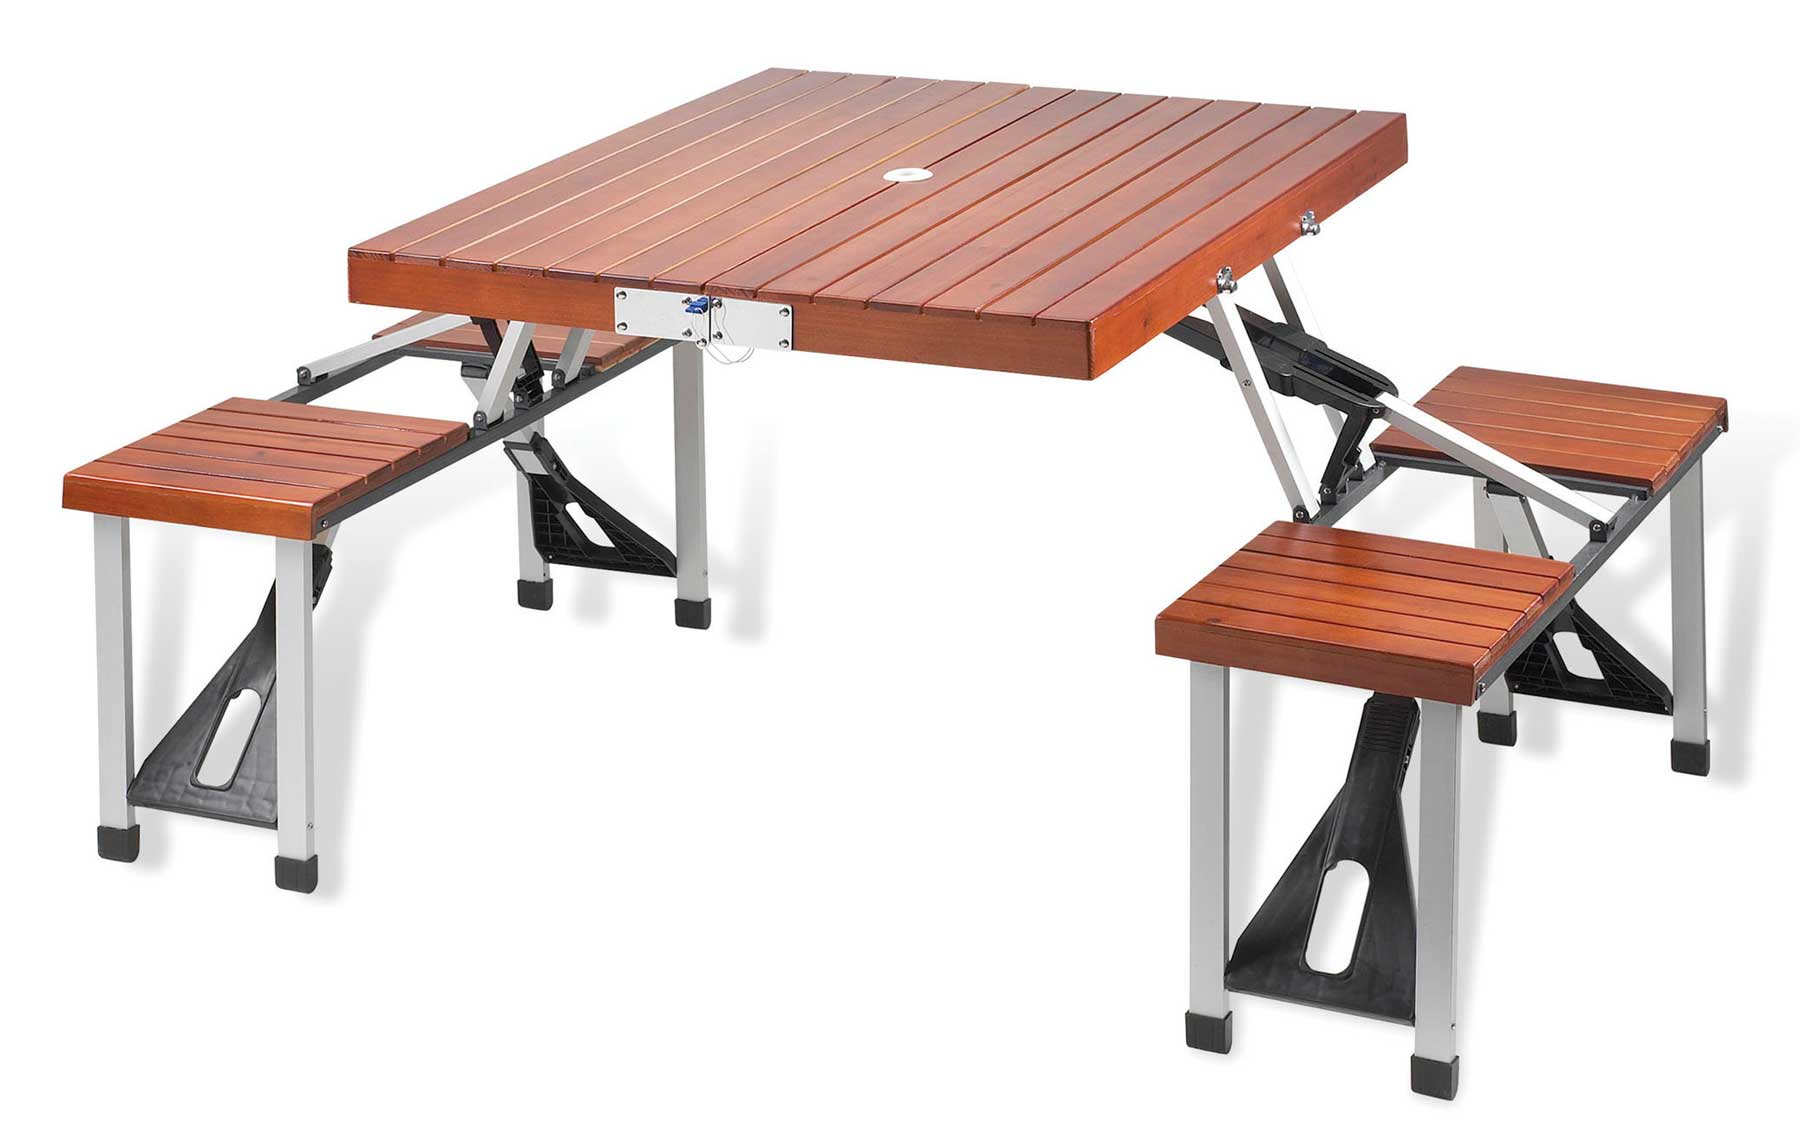 Fold Up Wooden Tables Folding Wood Table Design Advantages